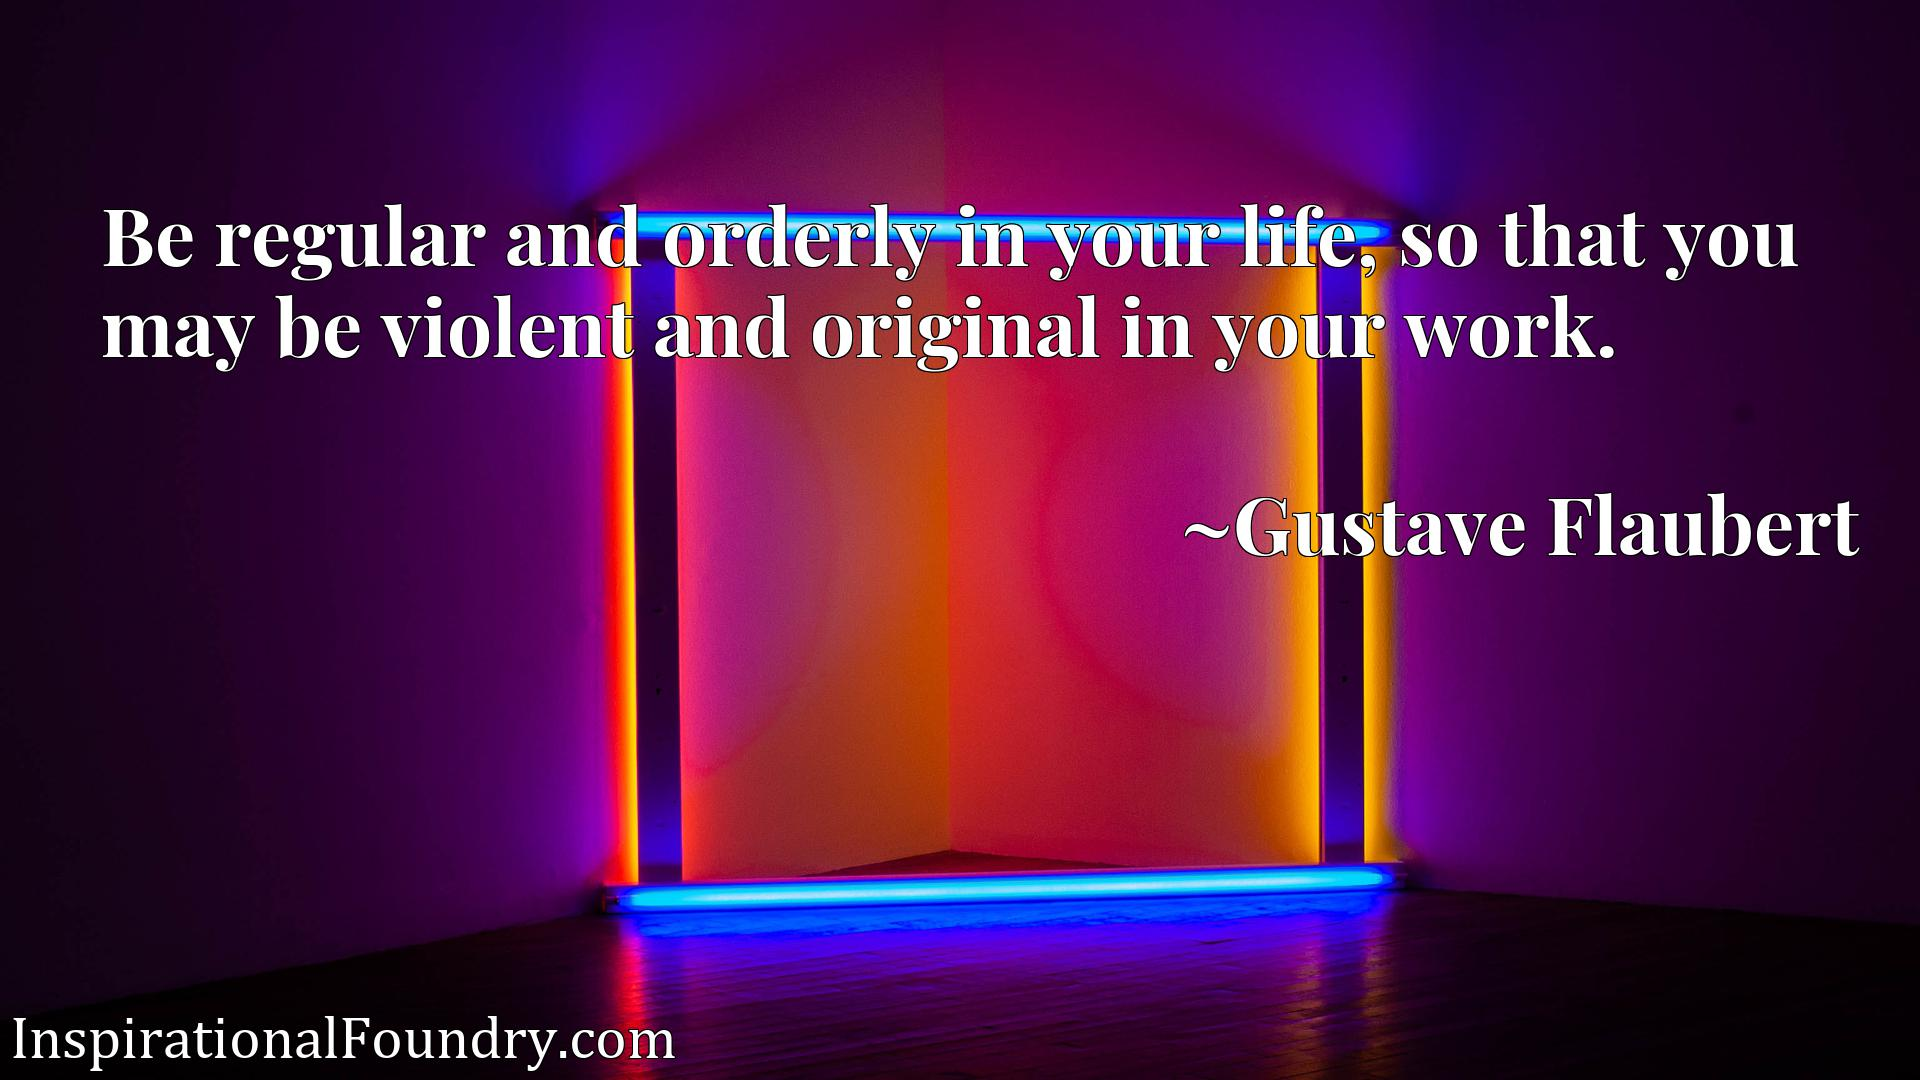 Be regular and orderly in your life, so that you may be violent and original in your work.